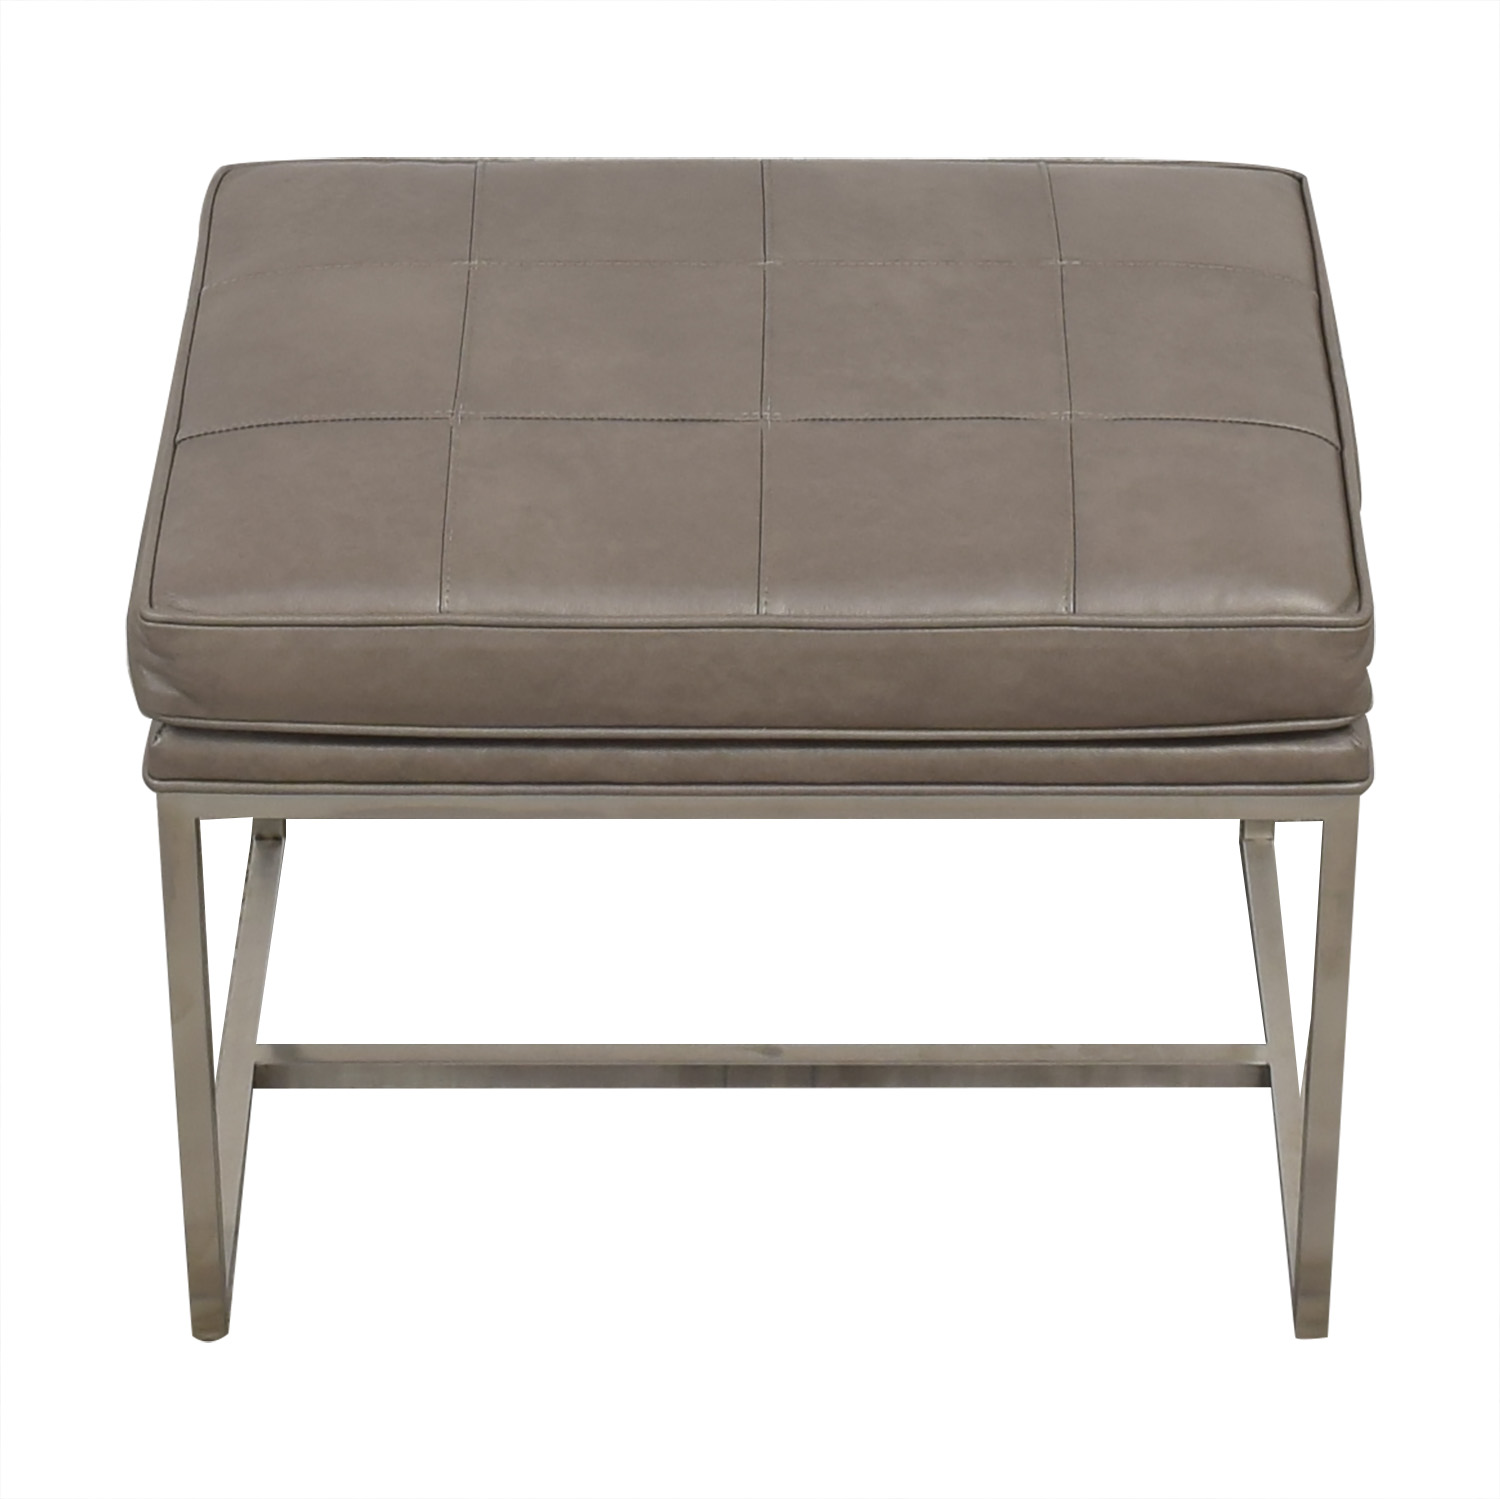 Ethan Allen Upholstered Bench / Chairs